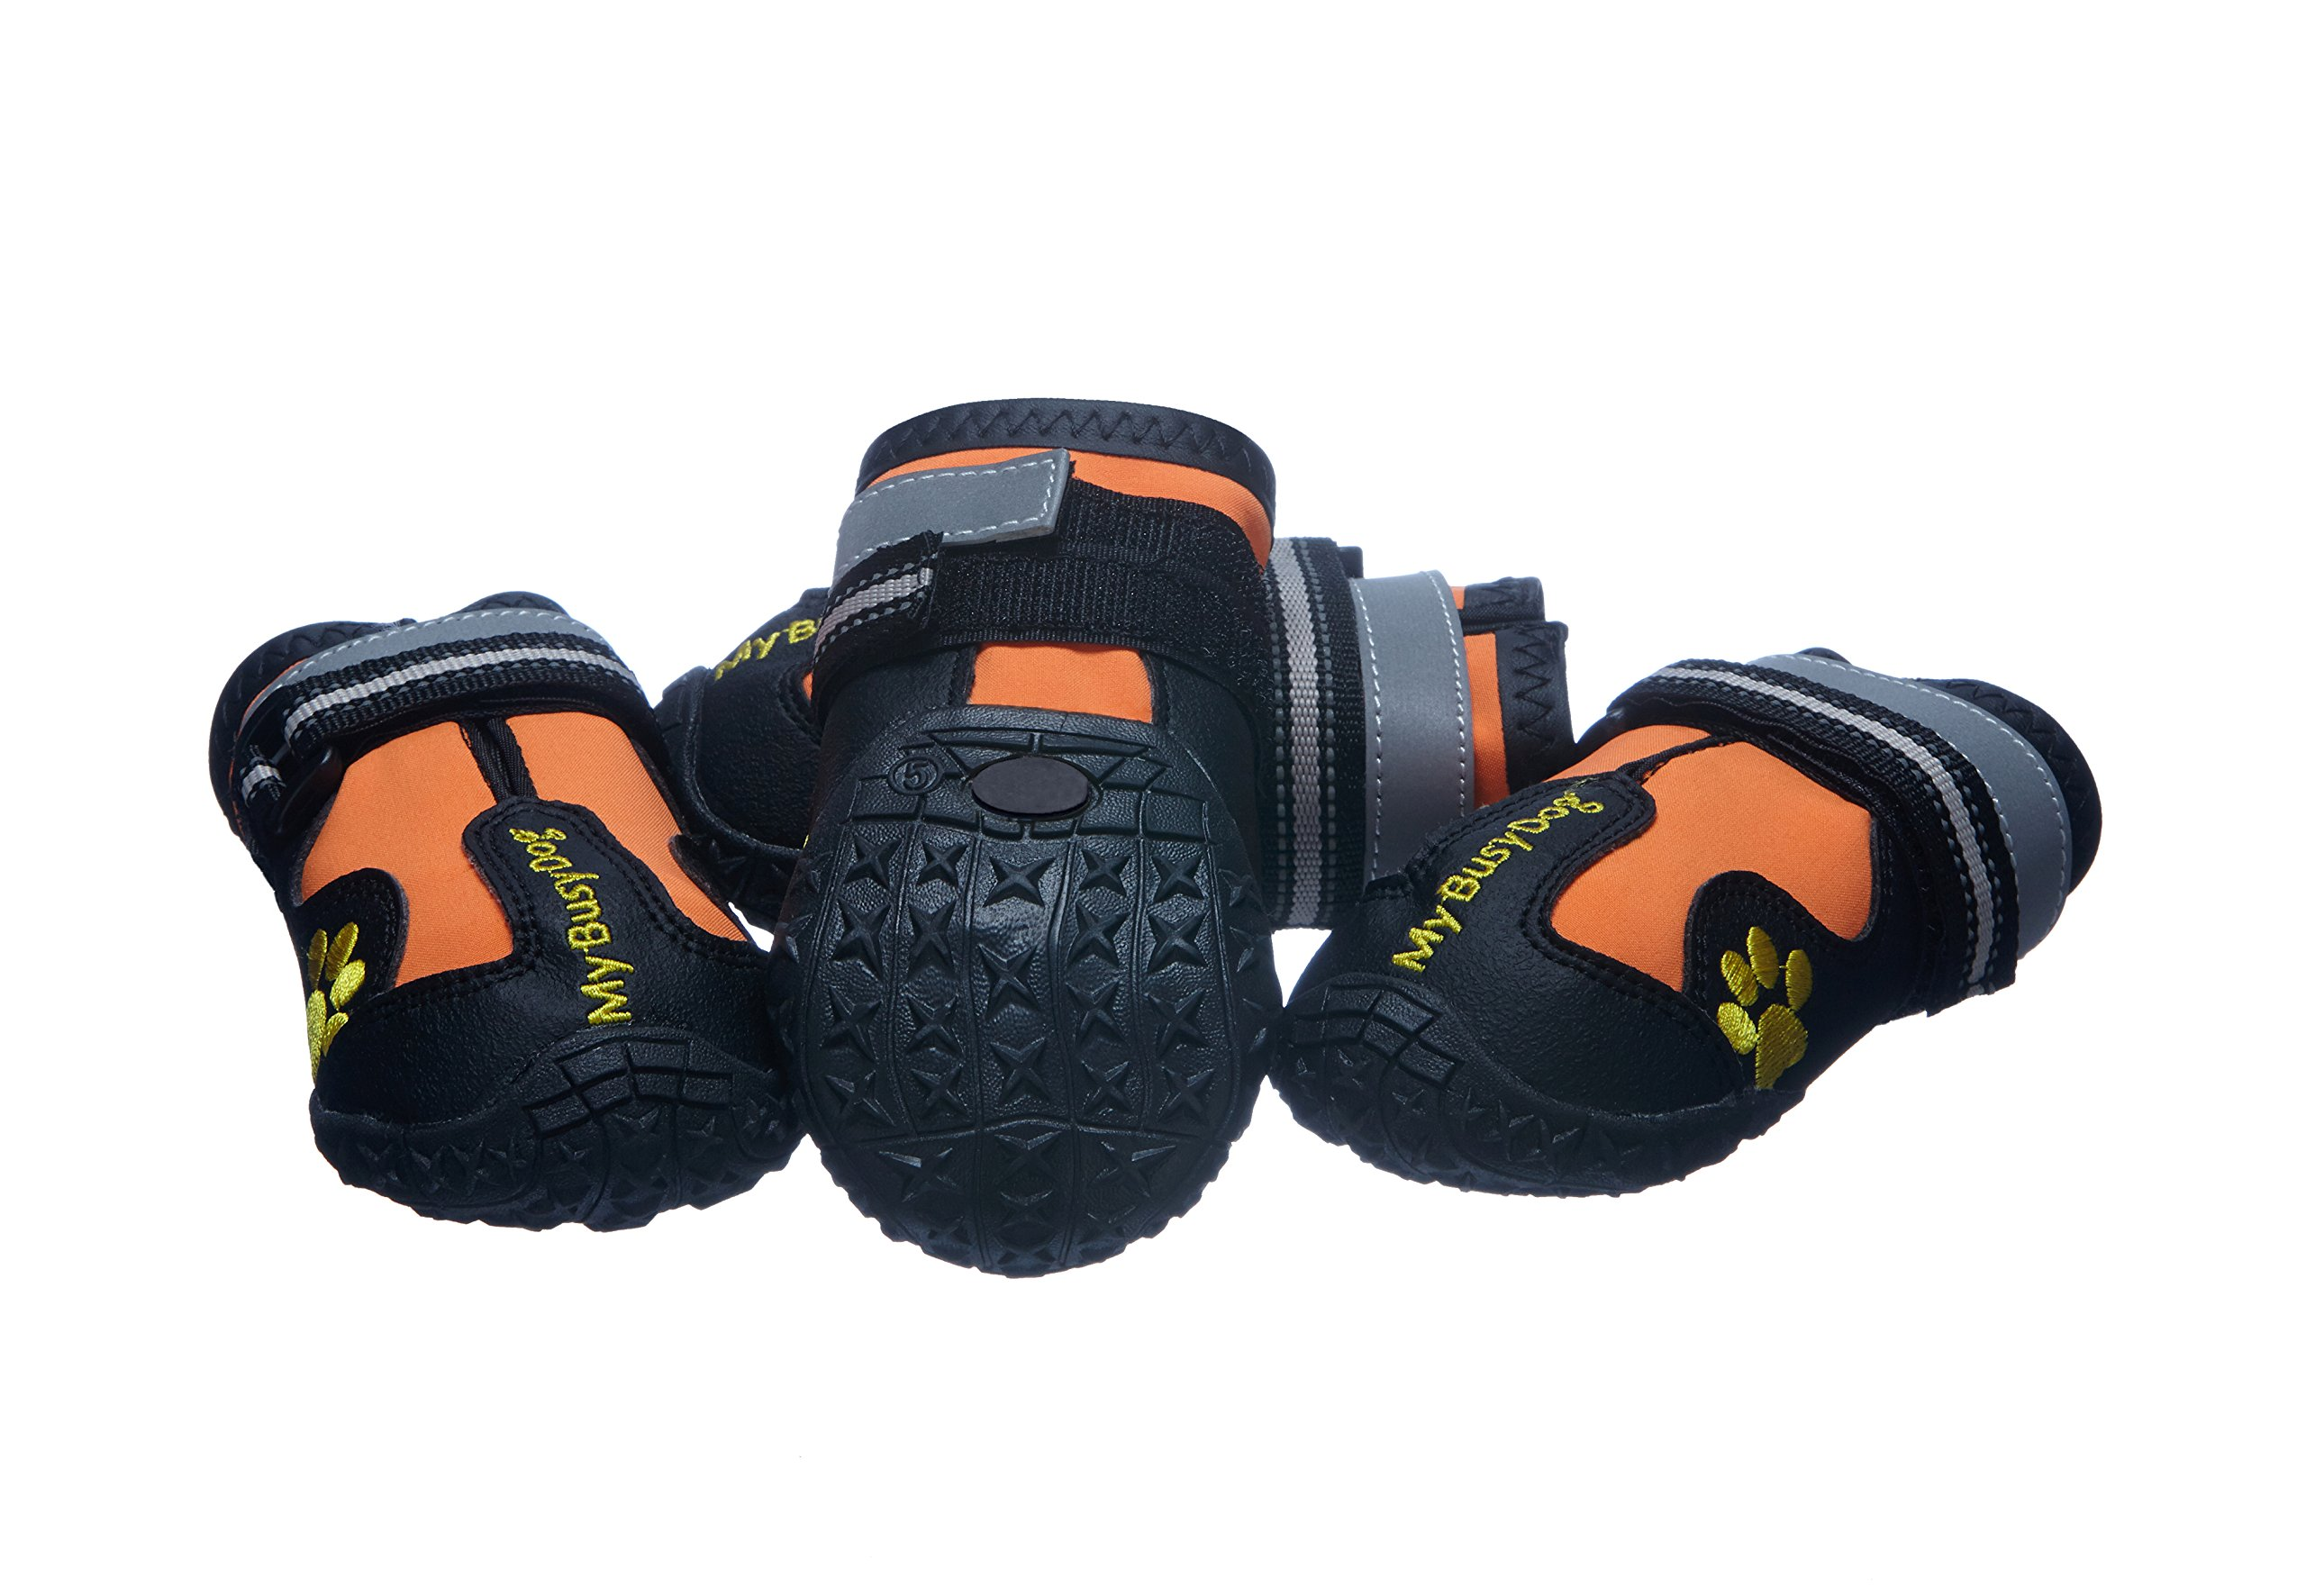 My Busy Dog Water Resistant Dog Shoes with Reflective Velcro and Rugged Anti-Slip Sole (Size 6, Orange)